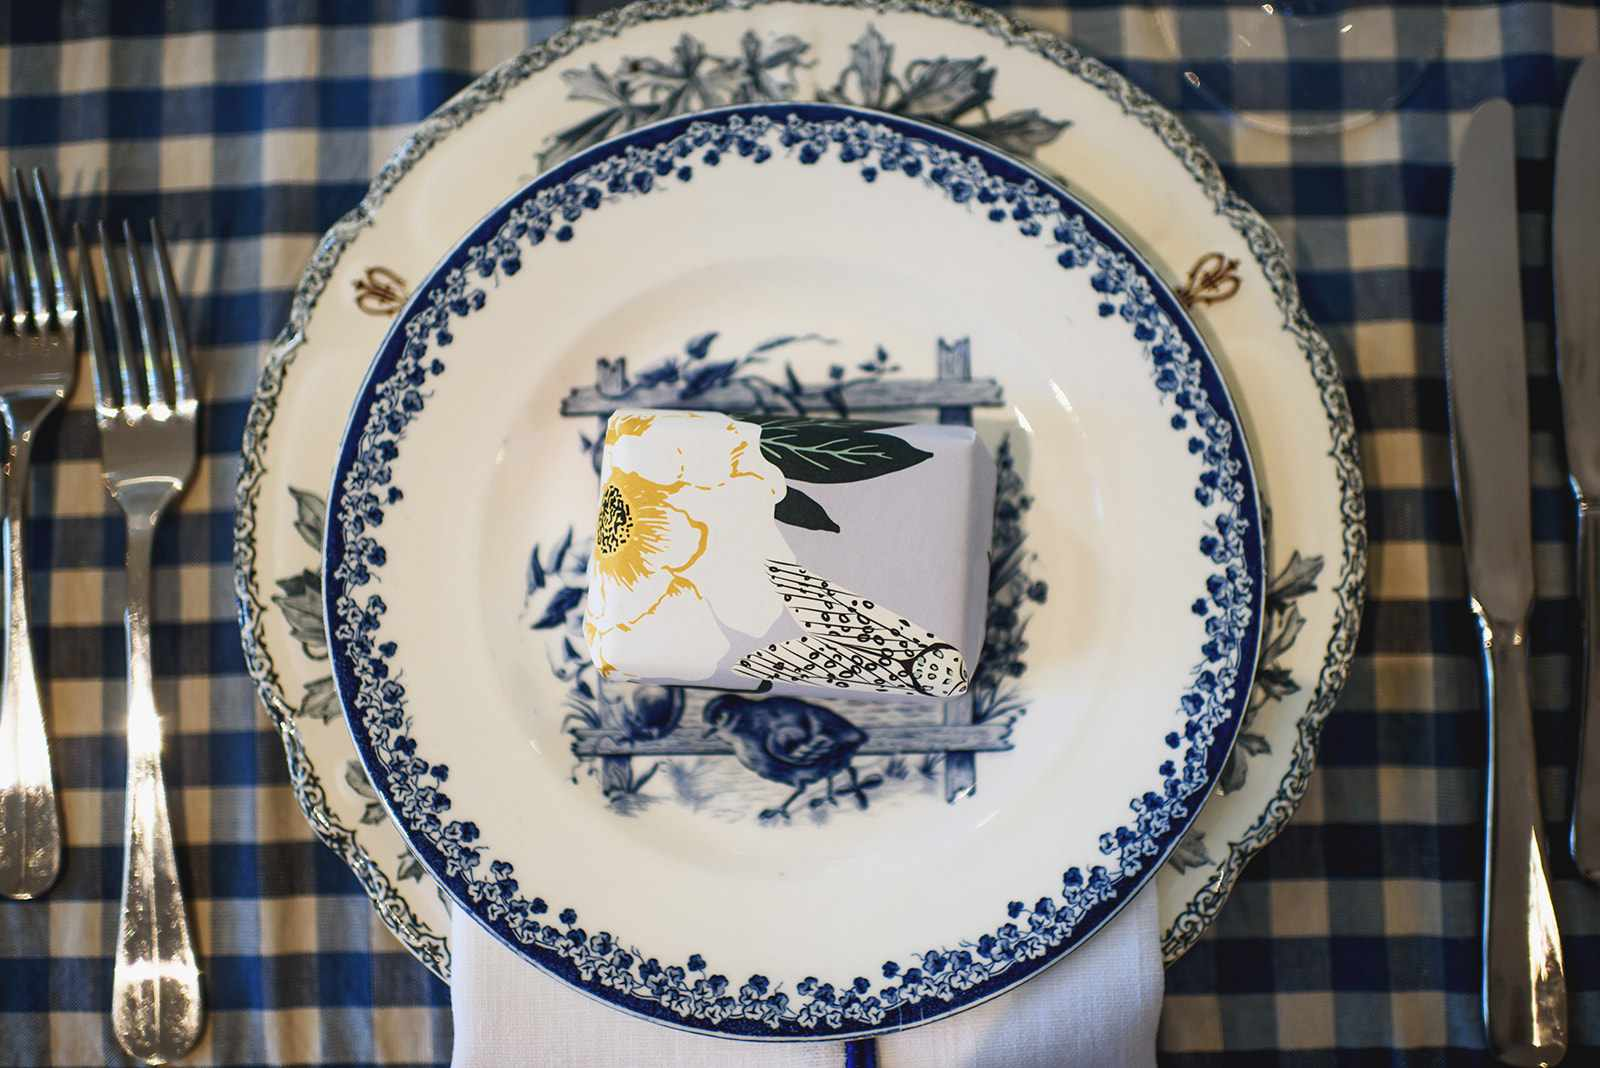 Plate place setting